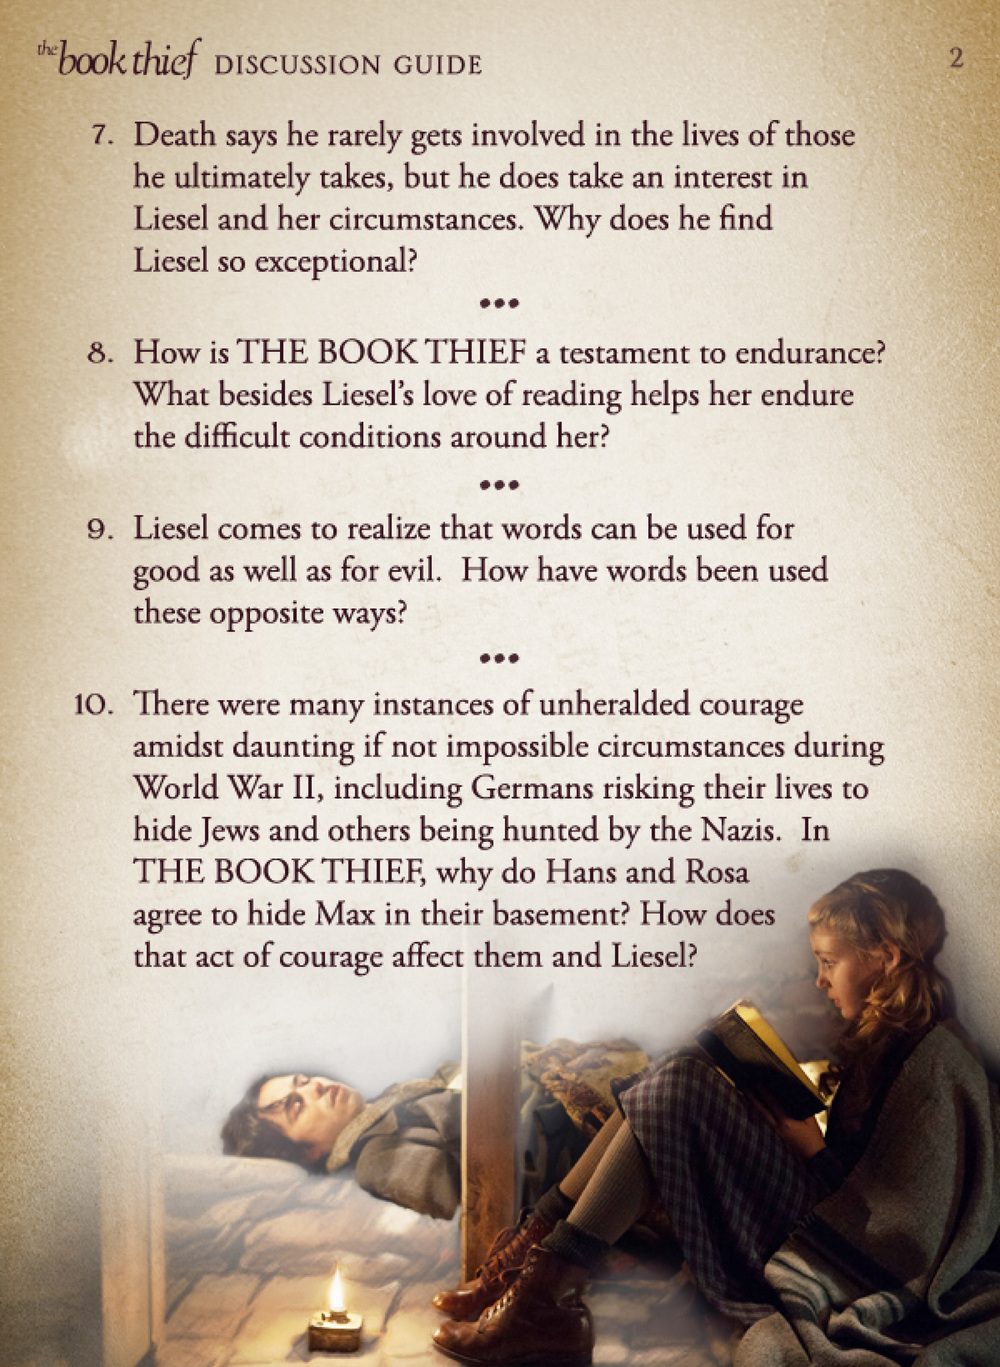 Book Thief Discussion Guide v3.jpg